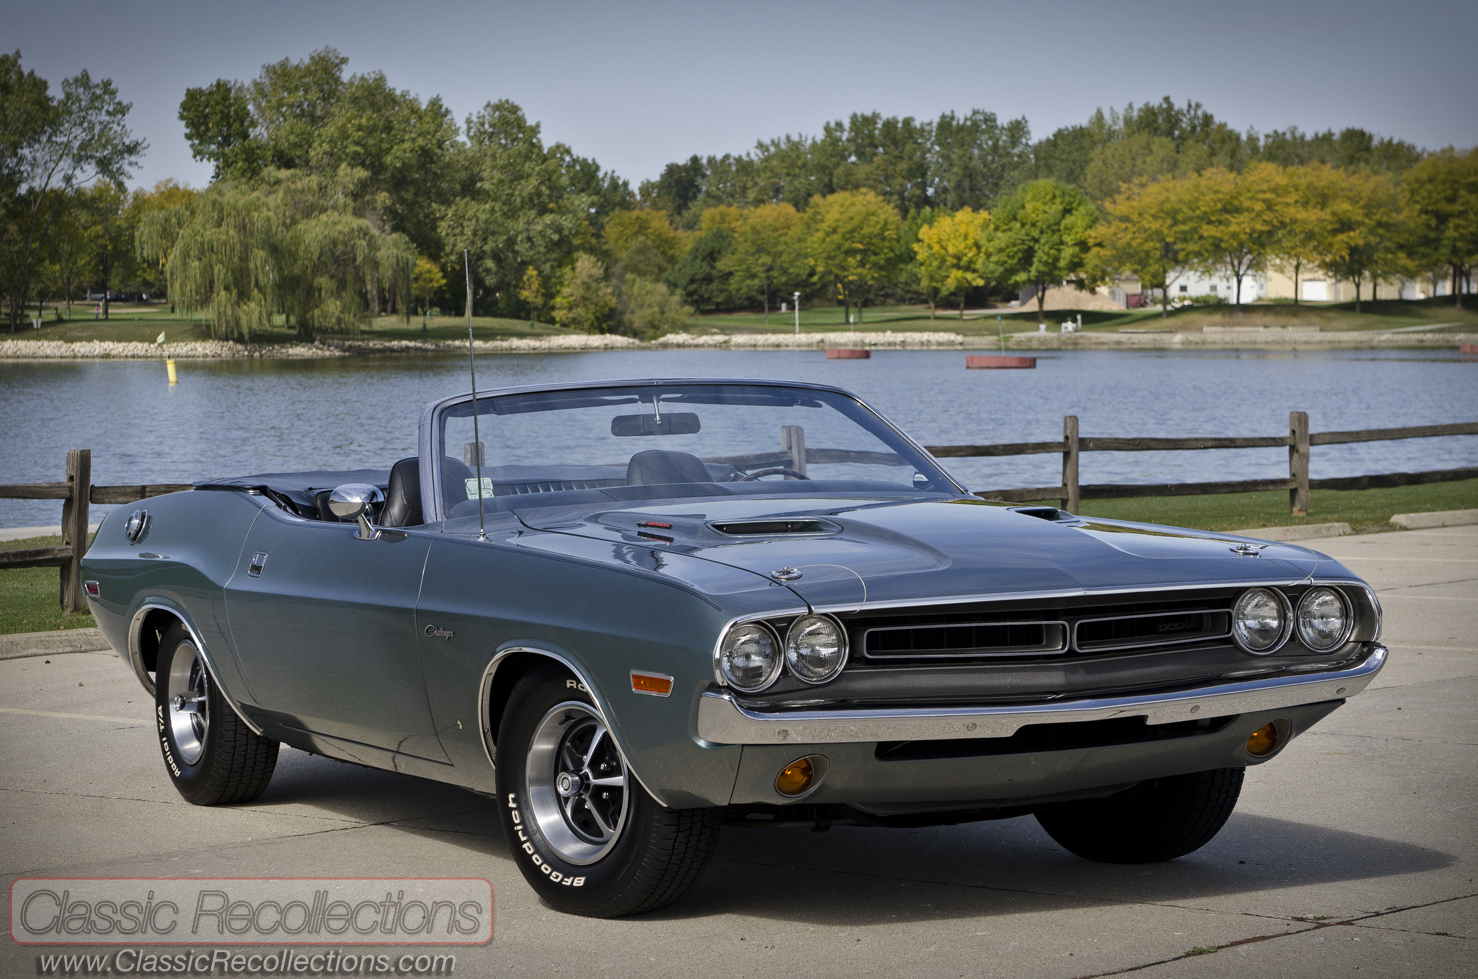 feature 1971 dodge challenger classic recollections. Black Bedroom Furniture Sets. Home Design Ideas